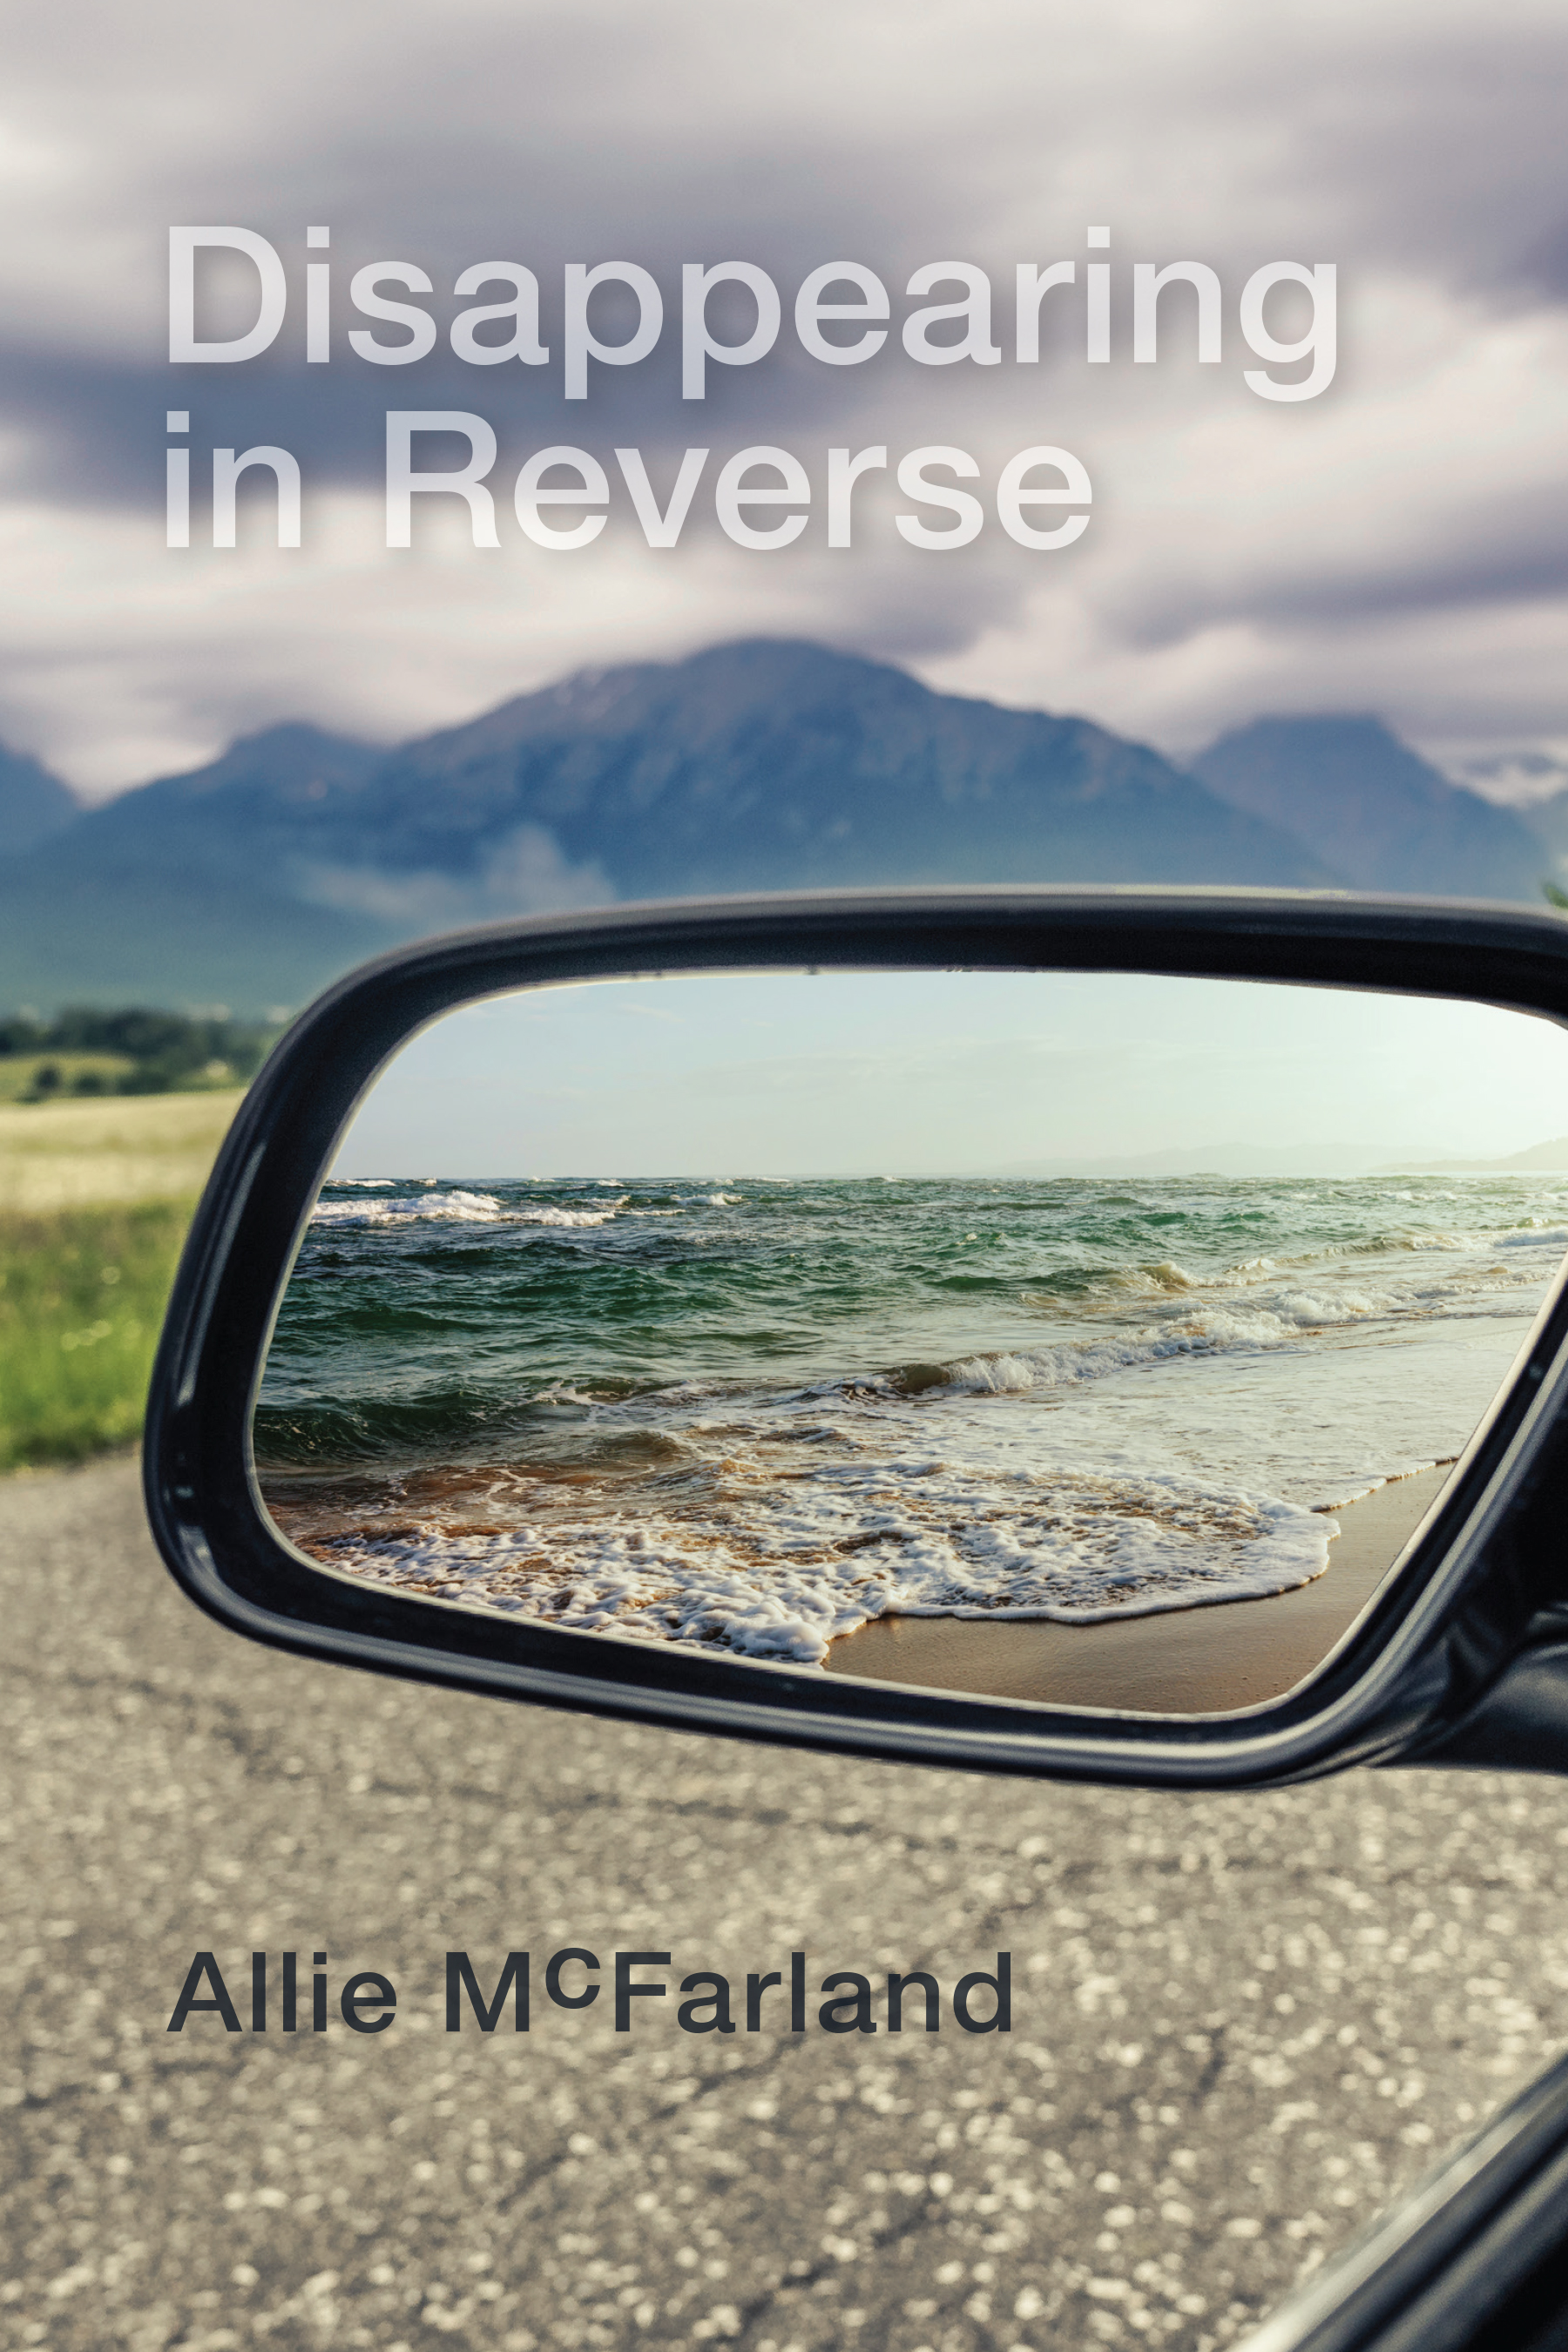 Cover Image for: Disappearing in Reverse